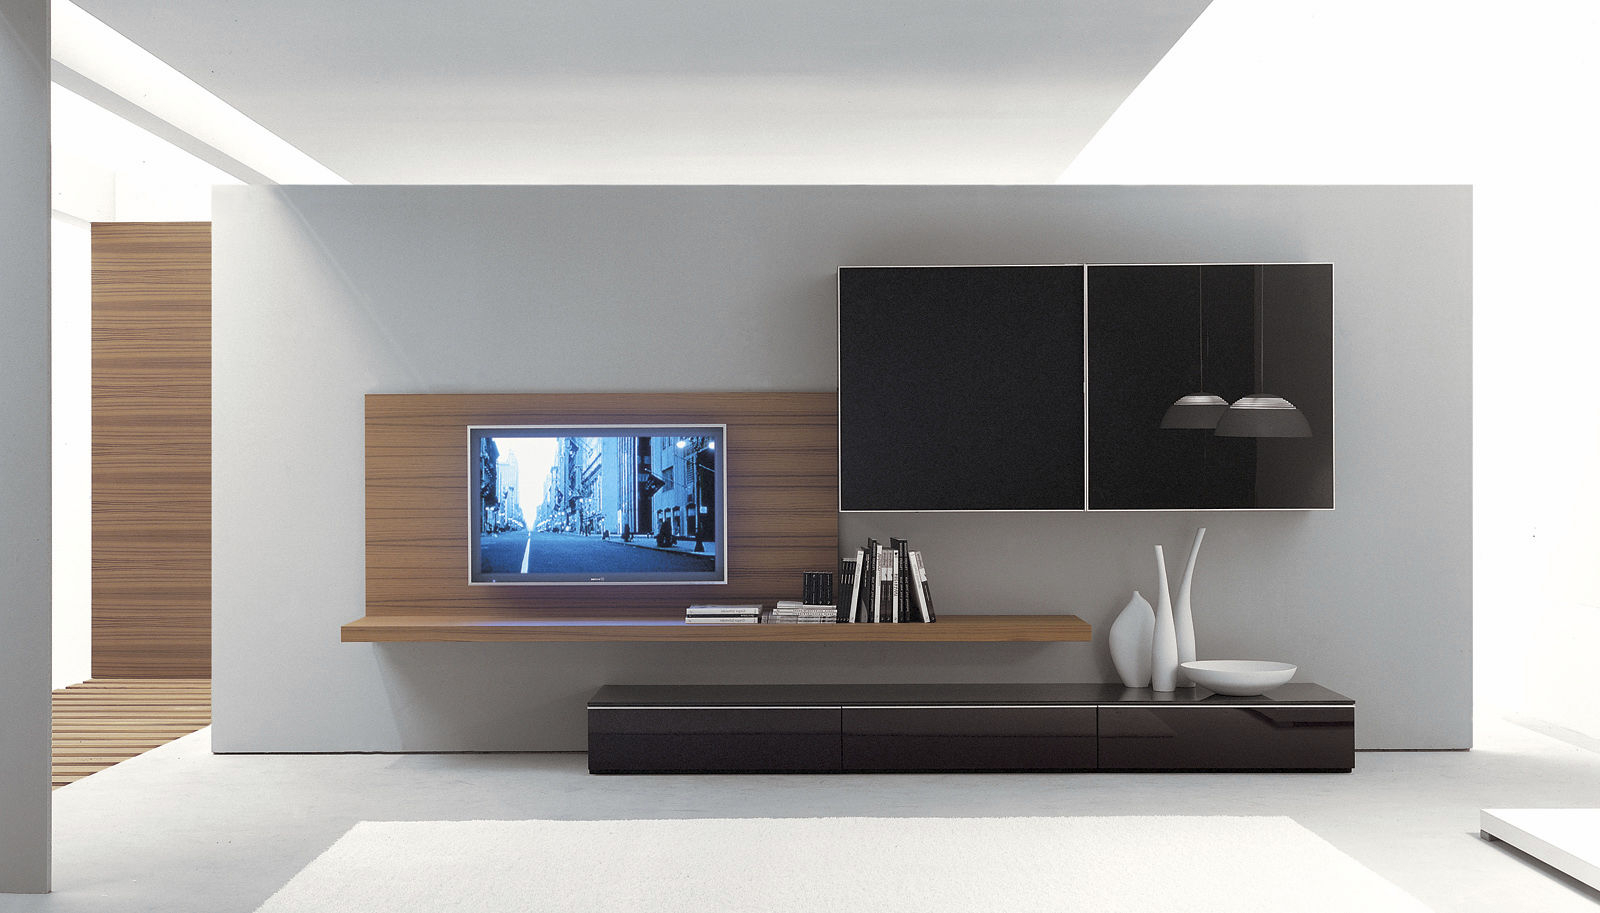 On The Wall Tv Units With Recent Wall Units: Astonishing Ideas On The Wall Tv Units Modern Tv Unit (View 2 of 20)